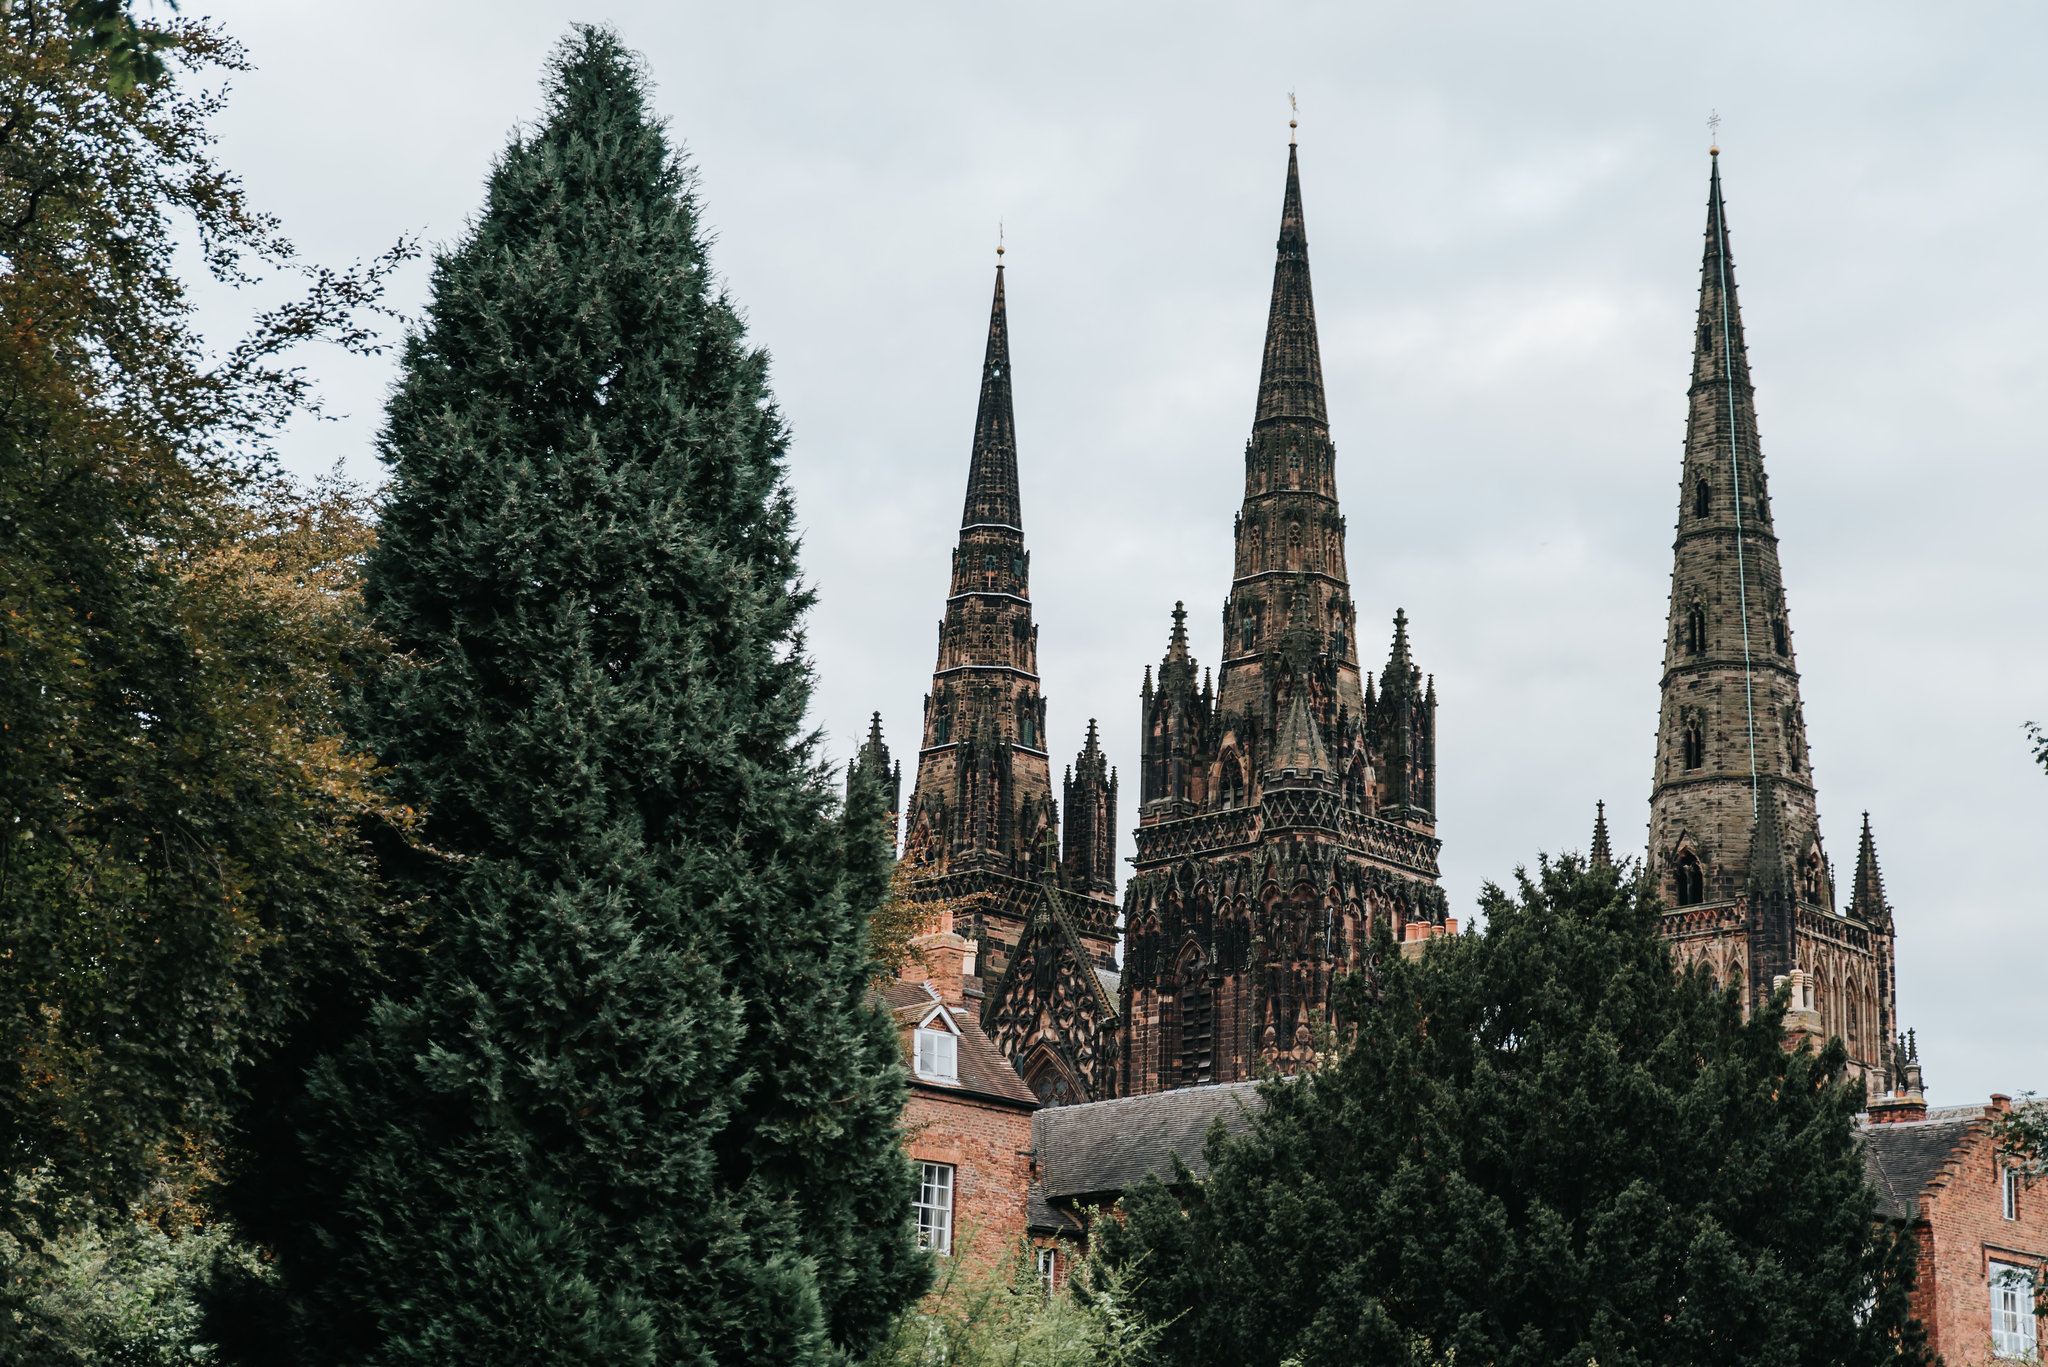 The 3 spires of Lichfield Cathedral in all it's glory on a cloudy day.